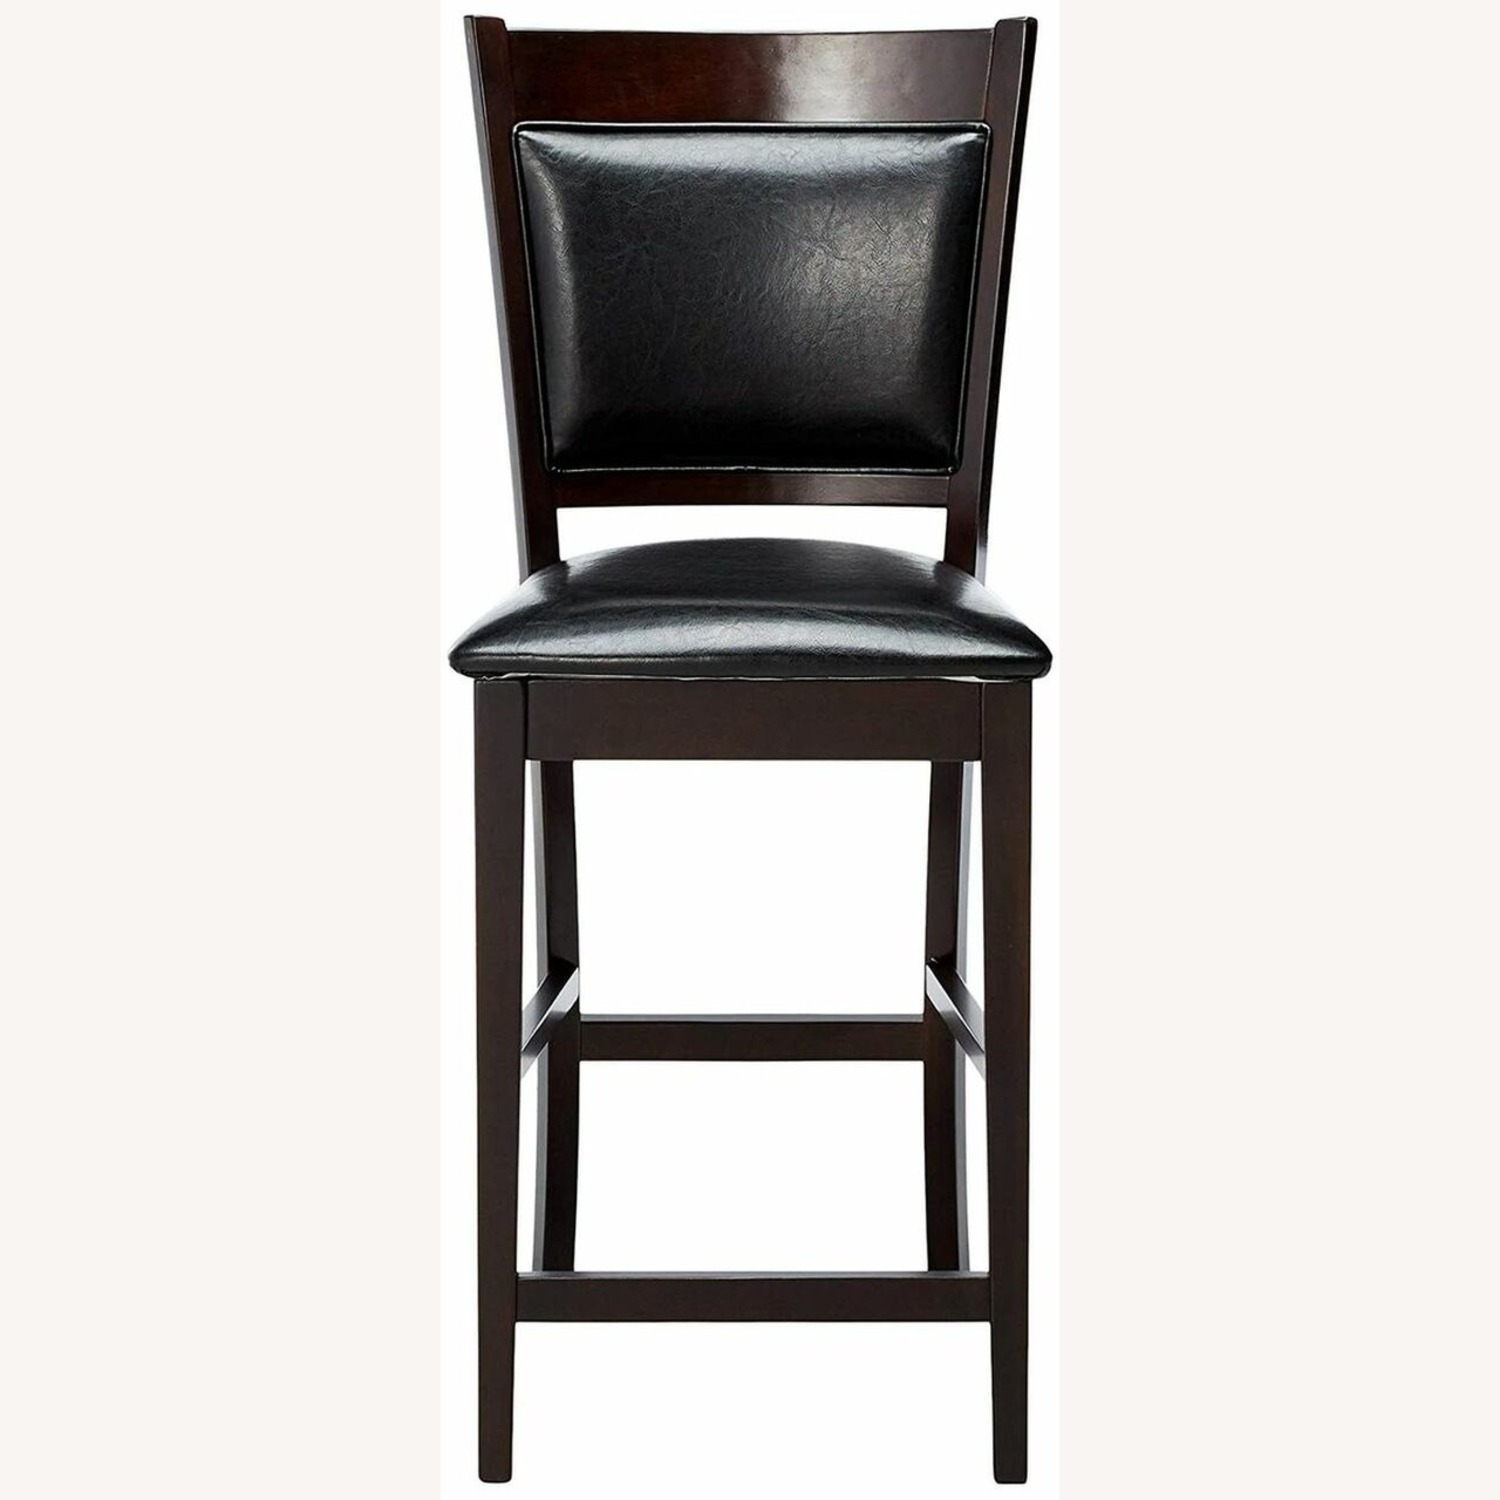 Counter Height Chair In Espresso Finish - image-2